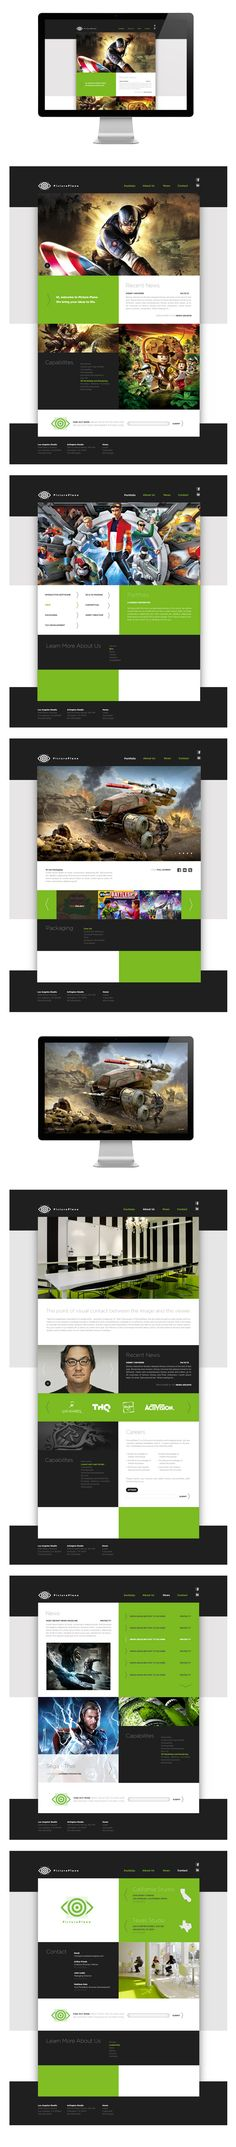 PicturePlane Website Redesign by David Whaite, via Behance